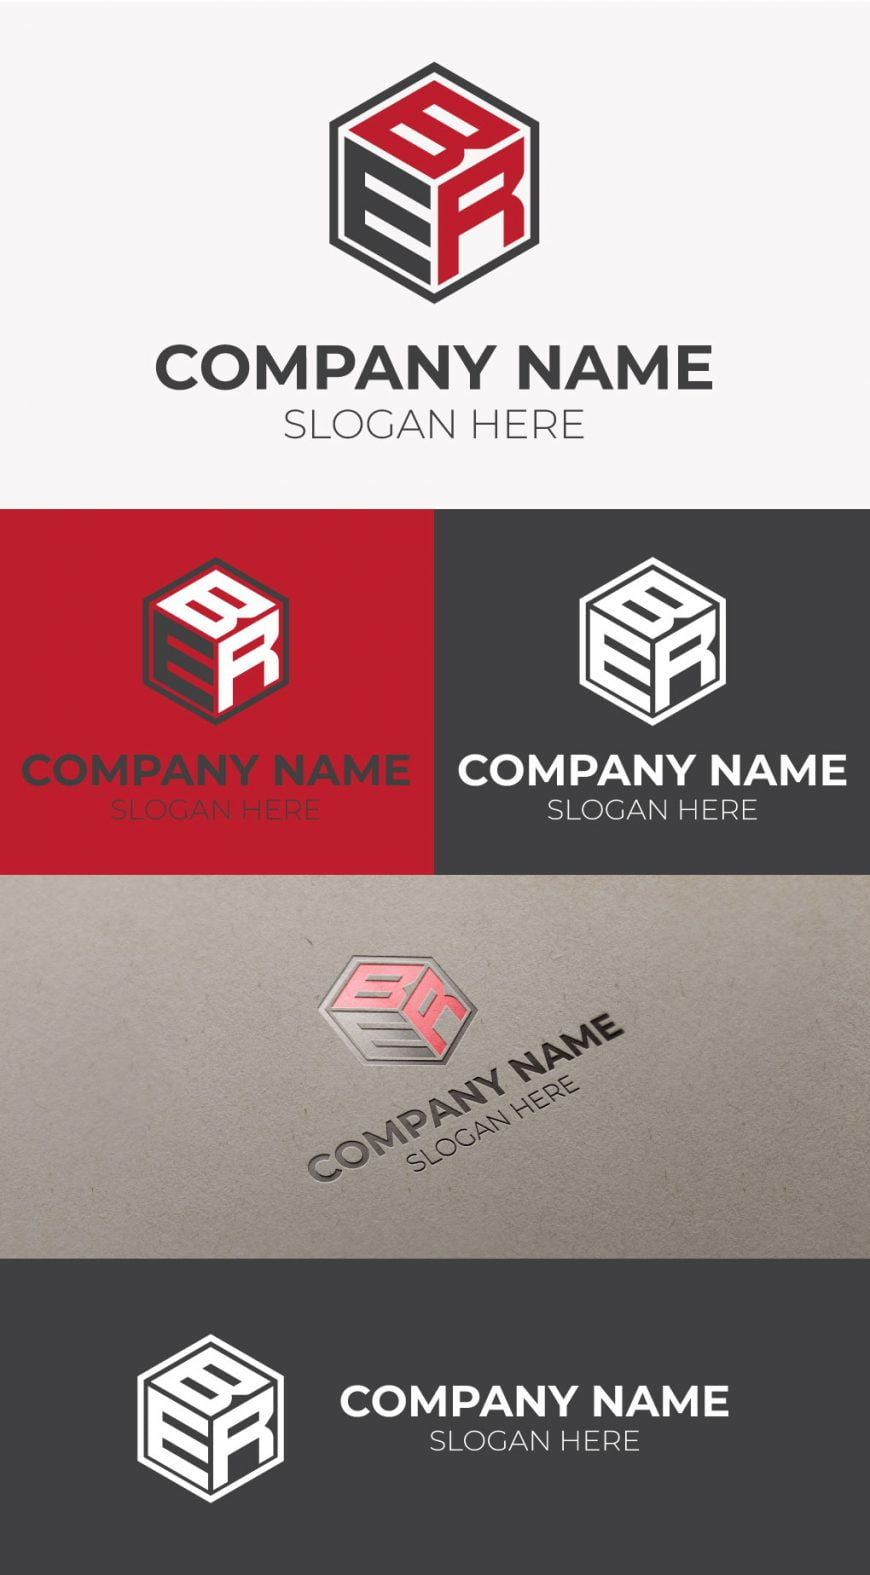 BER-LOGO-FREE-TEMPLATE-DOWNLOAD